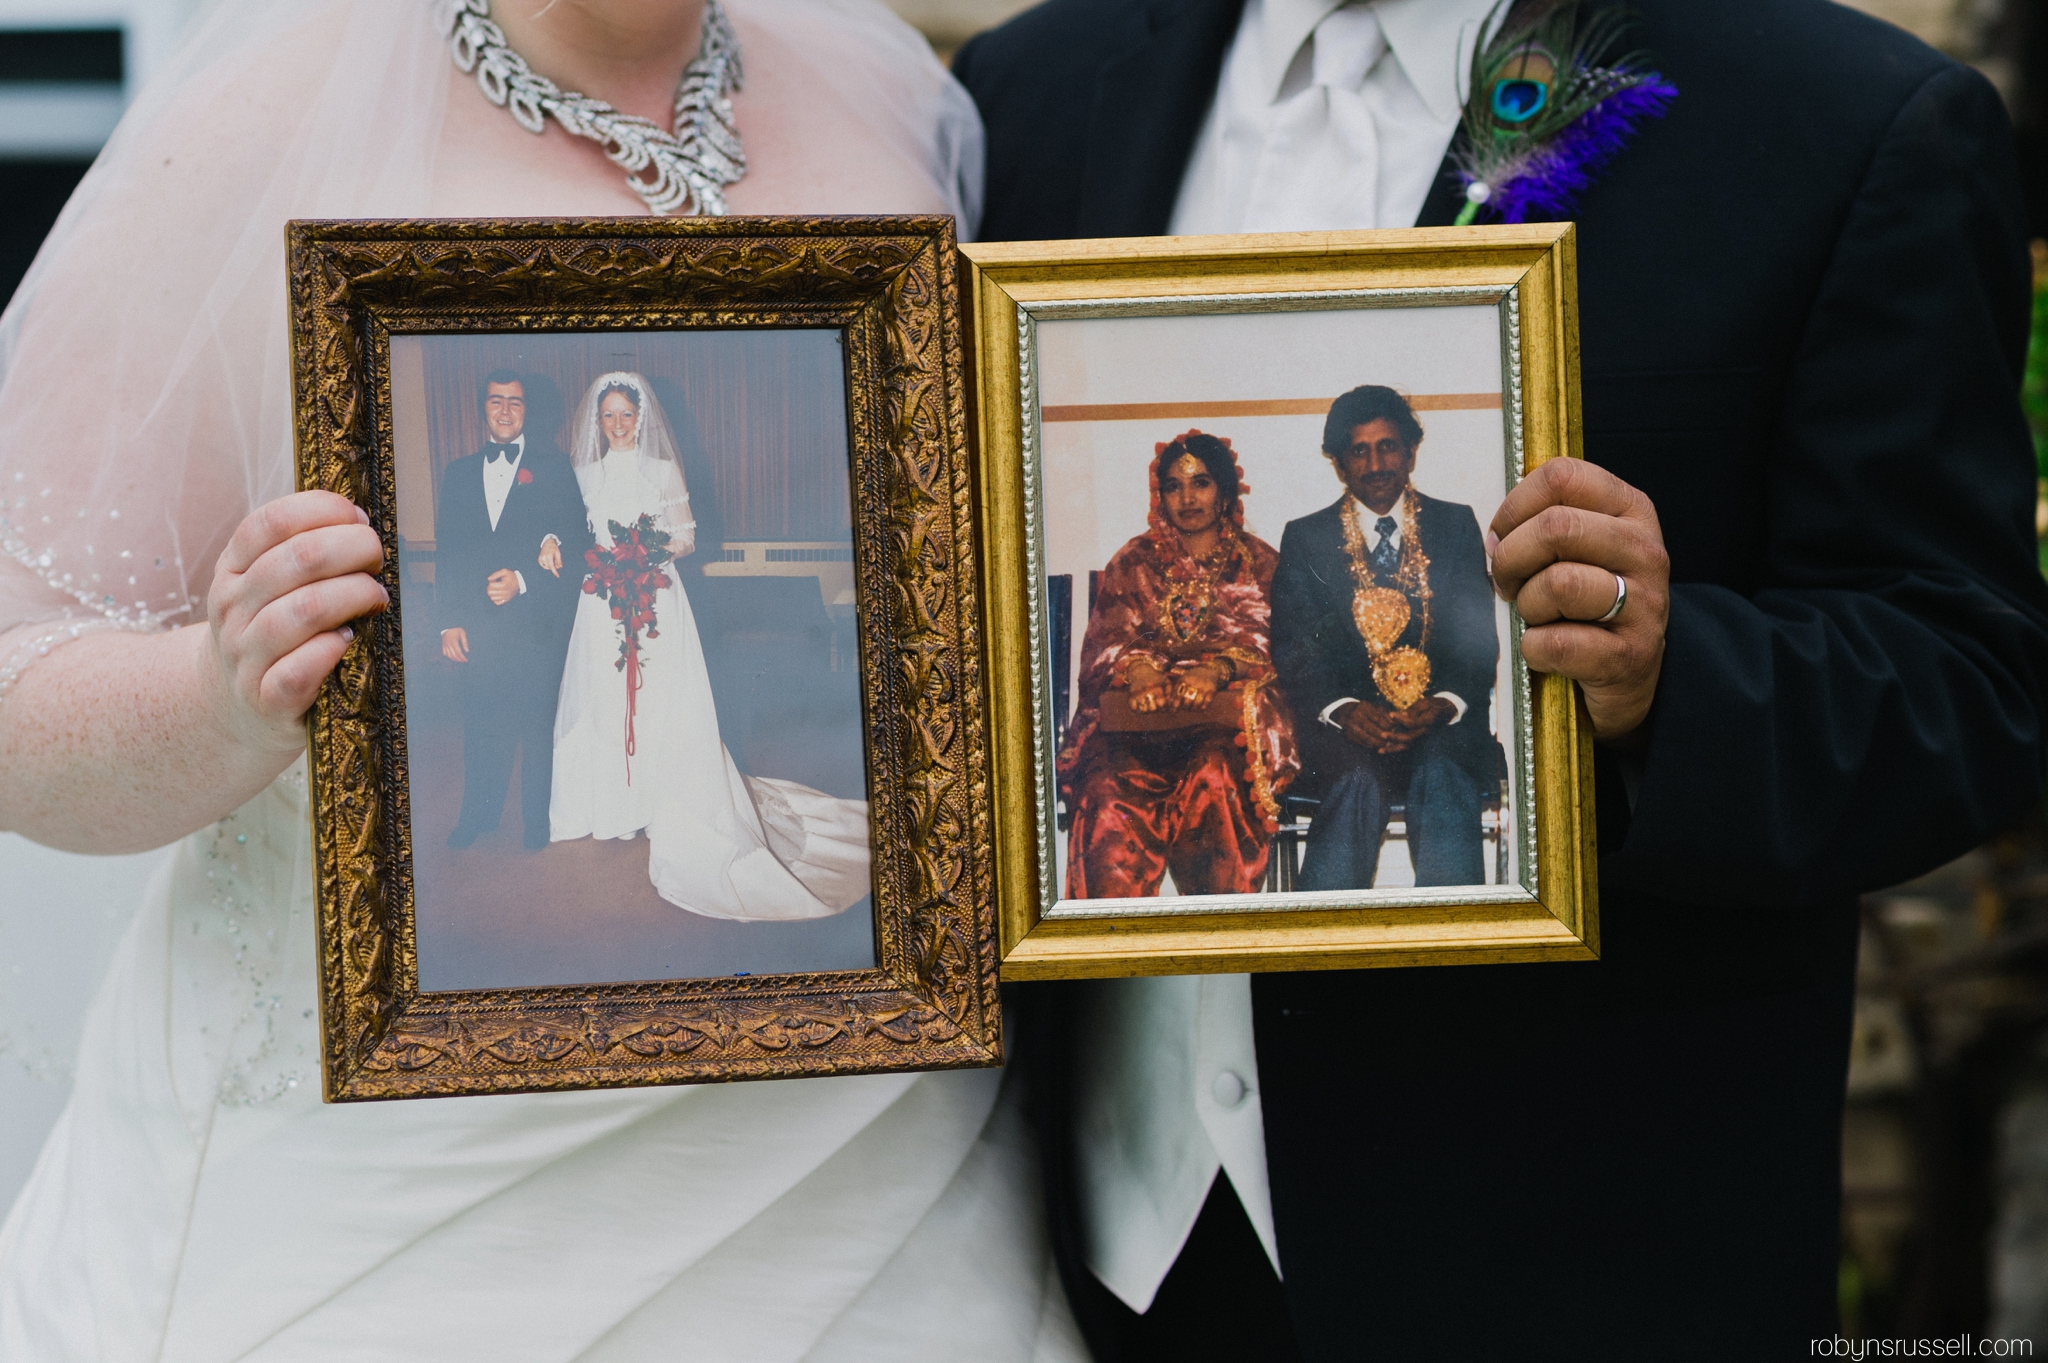 33-bride-and-groom-holding-old-photos-of-parents-on-wedding-day.jpg